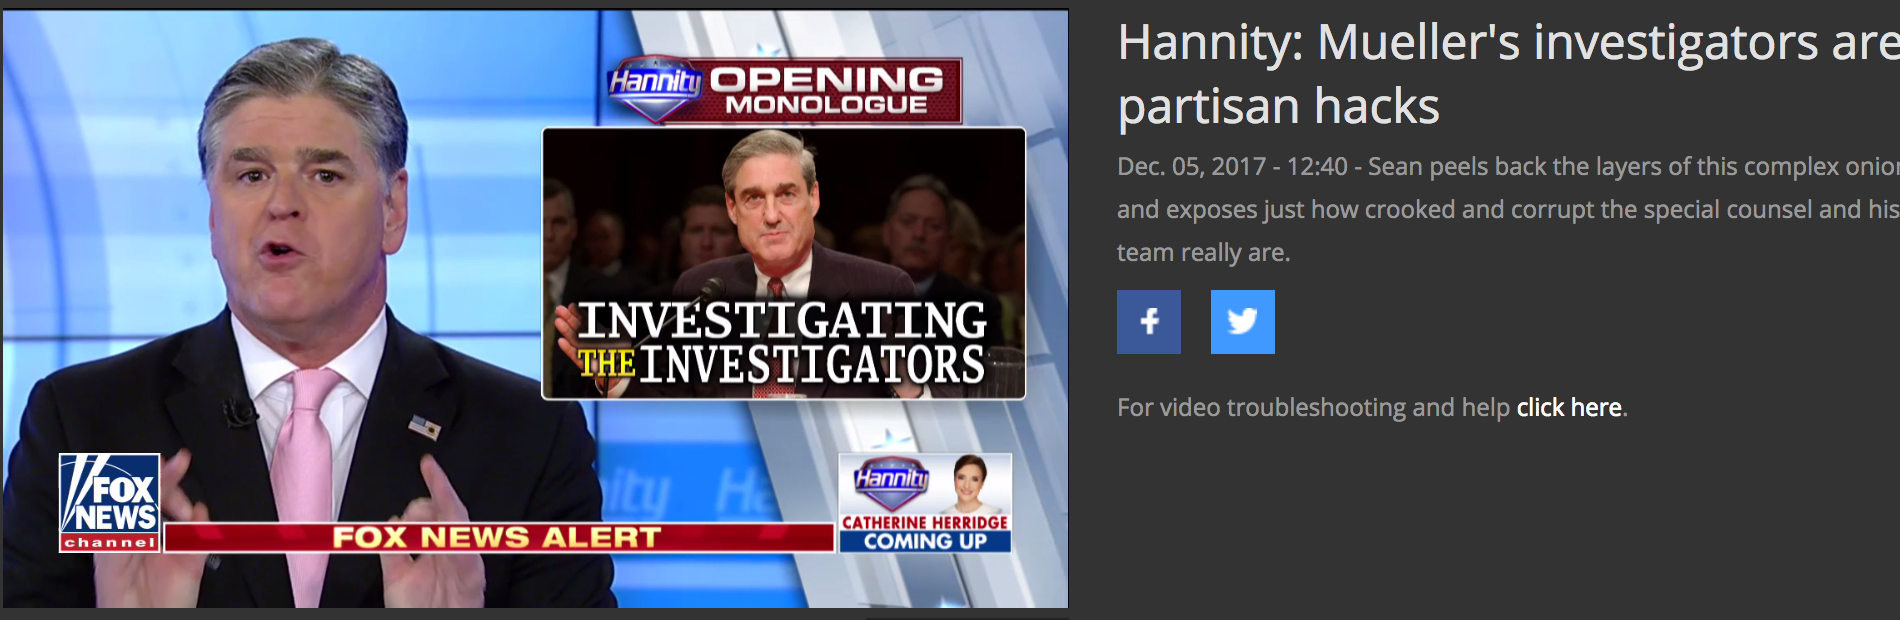 Hannity_120517.png